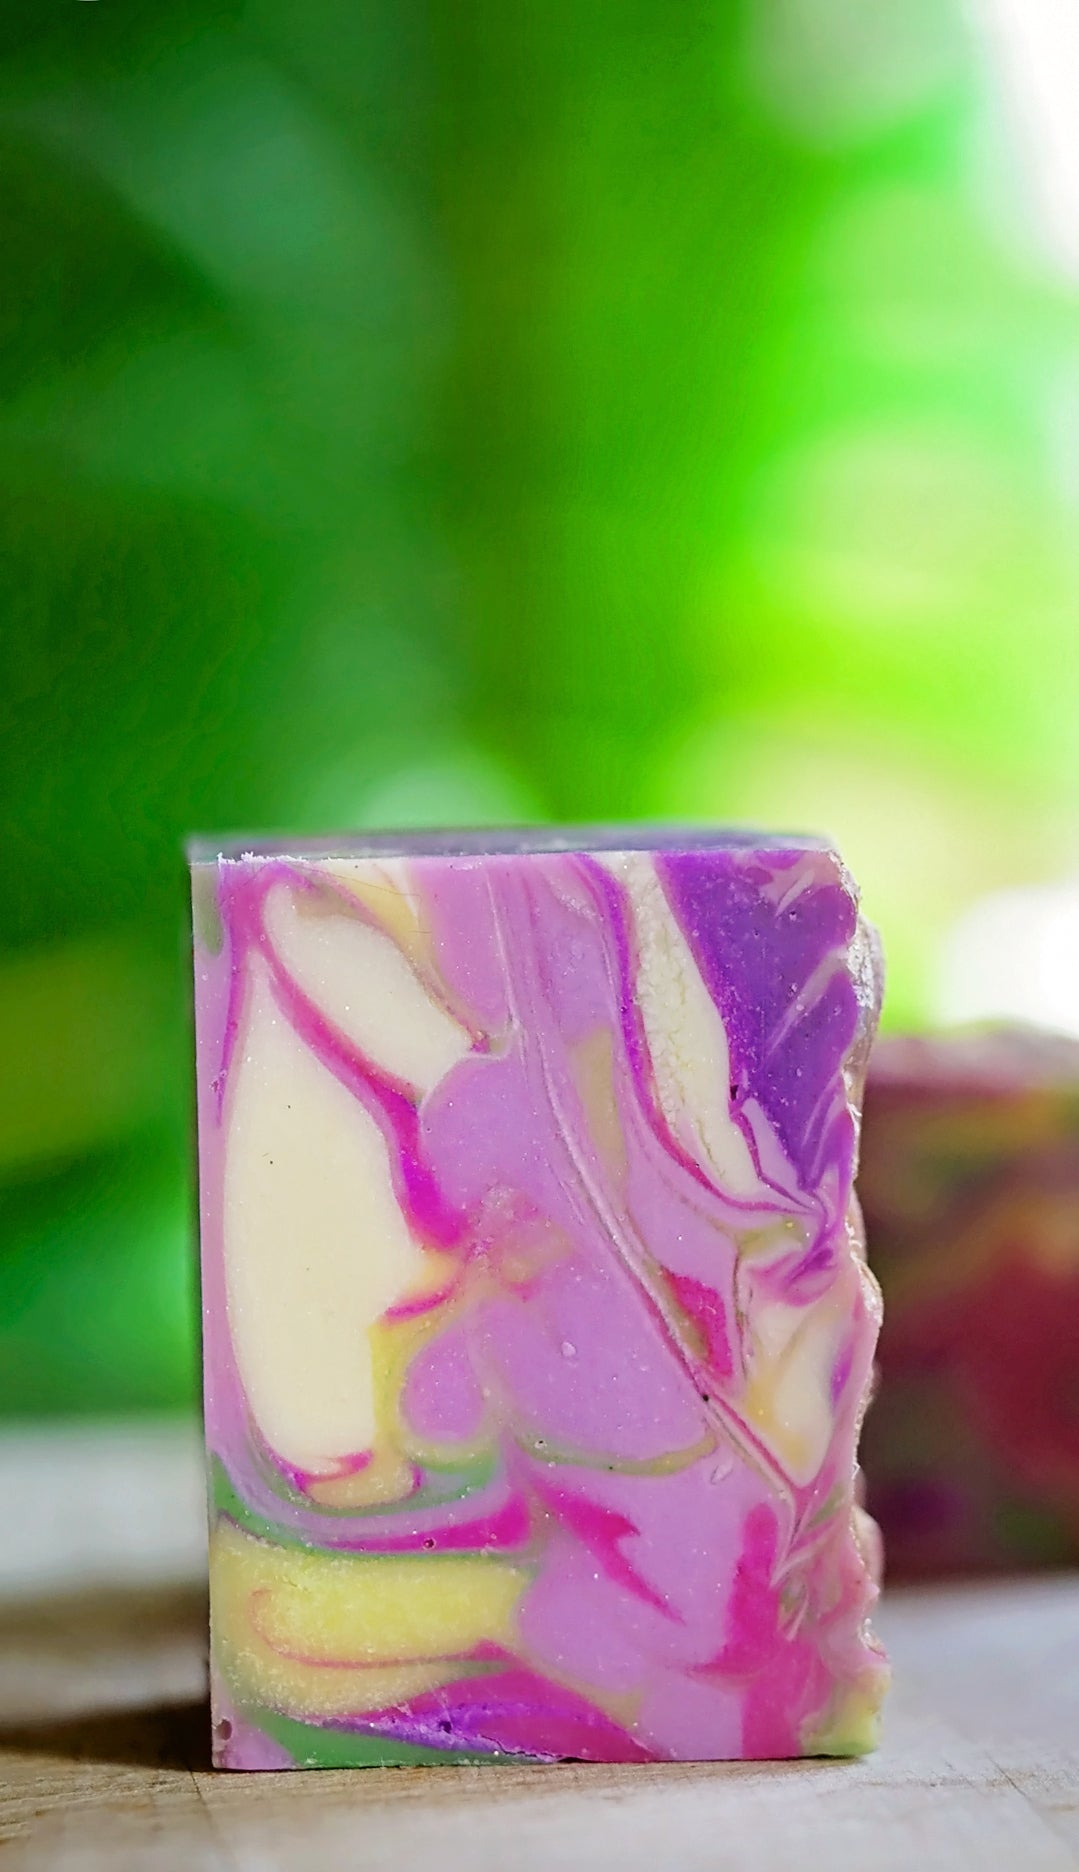 Orchid Dream: Limited Edition - CDF Skin Care - All natural bar soap -  Dry skin